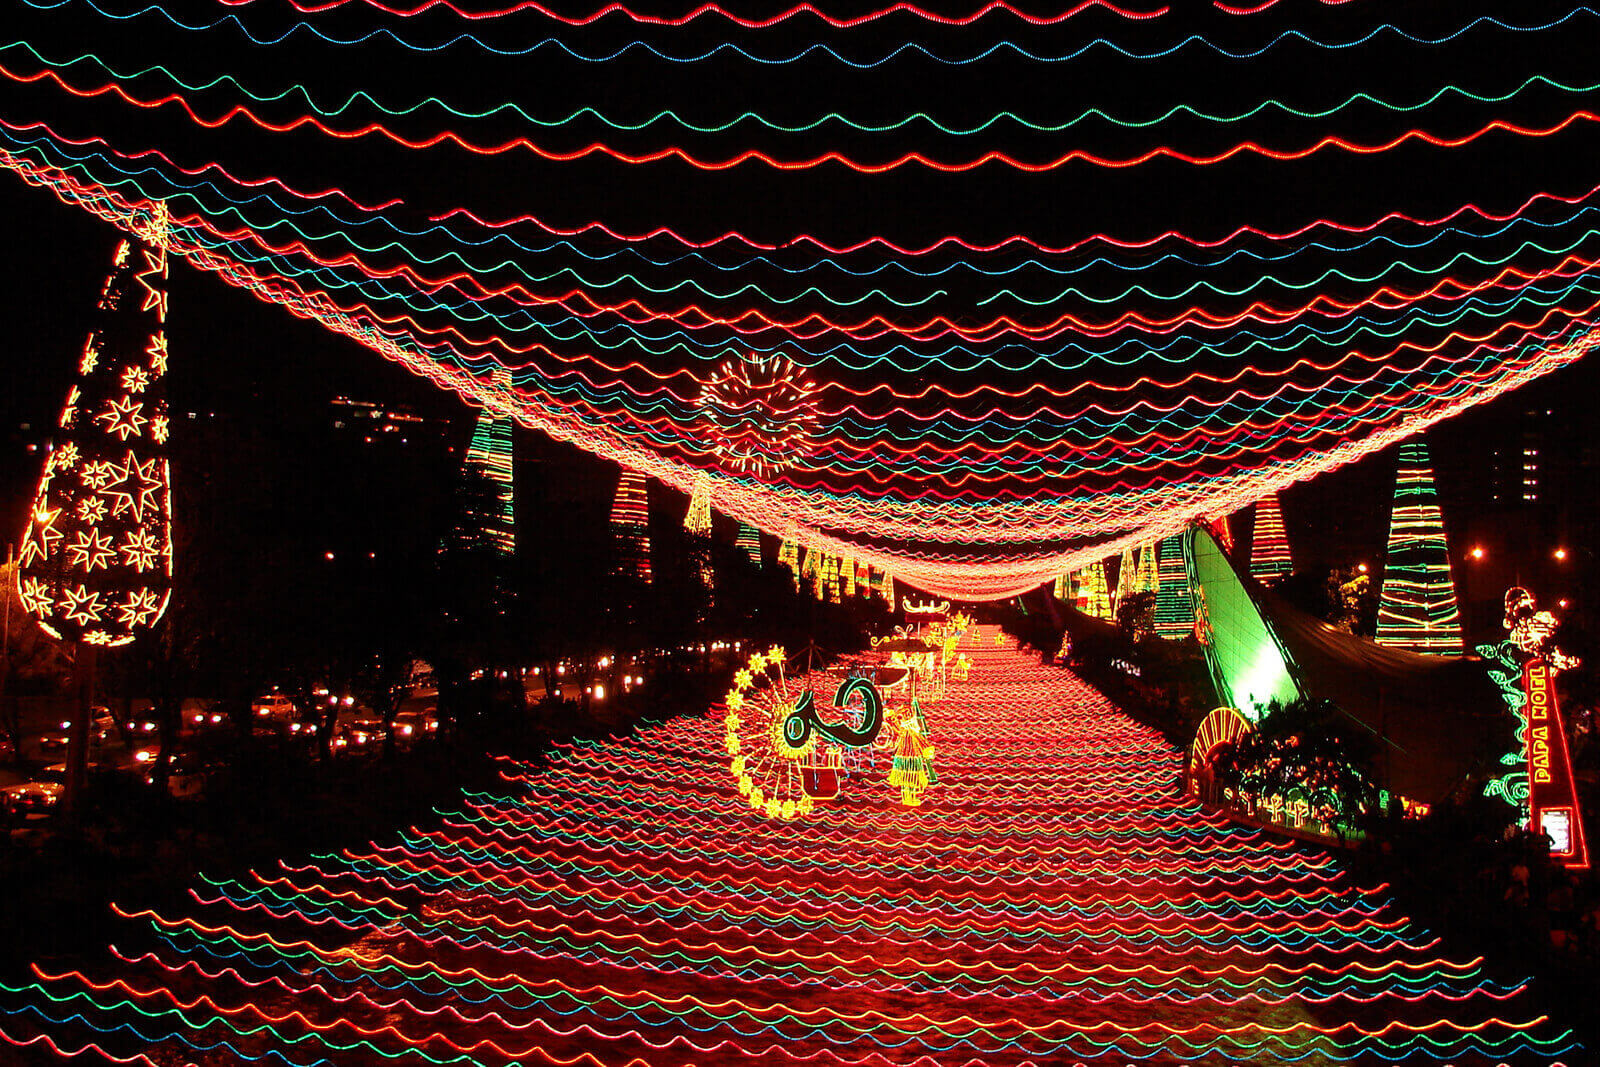 Christmas in Colombia is best celebrated in Medellin with the colorful lights of El Alumbrado